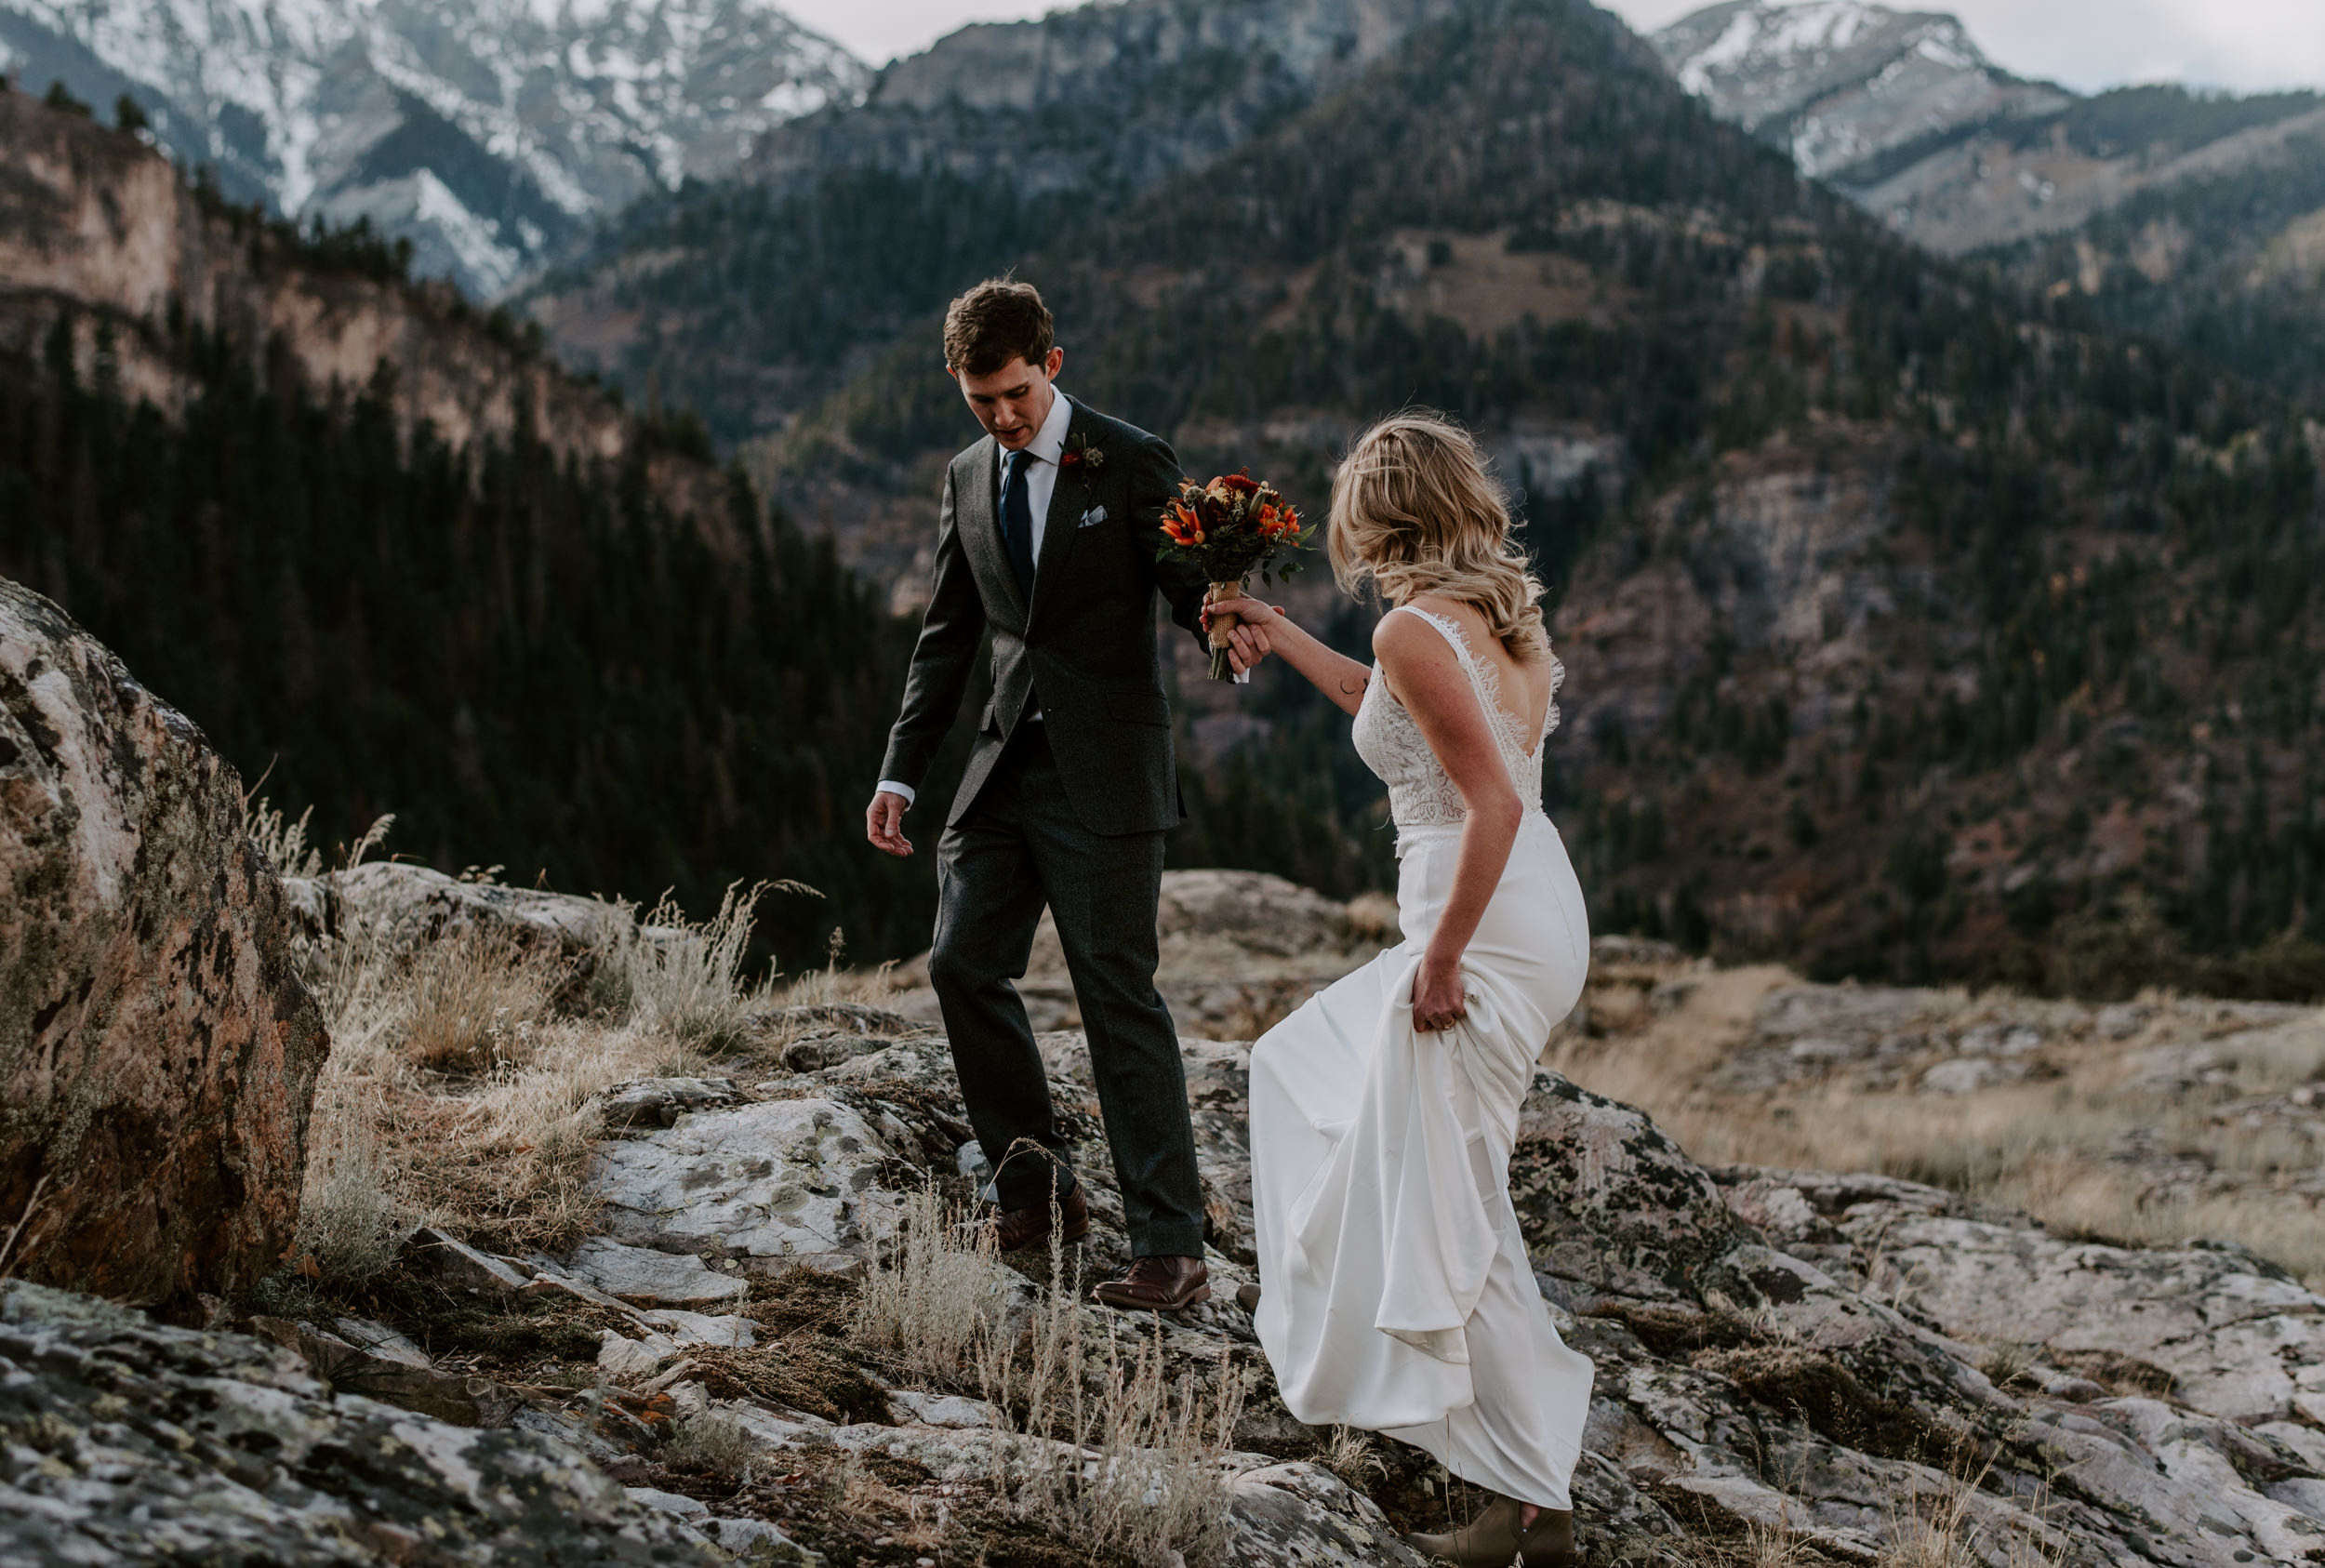 Hiking mountain elopement in Ouray, Colorado.